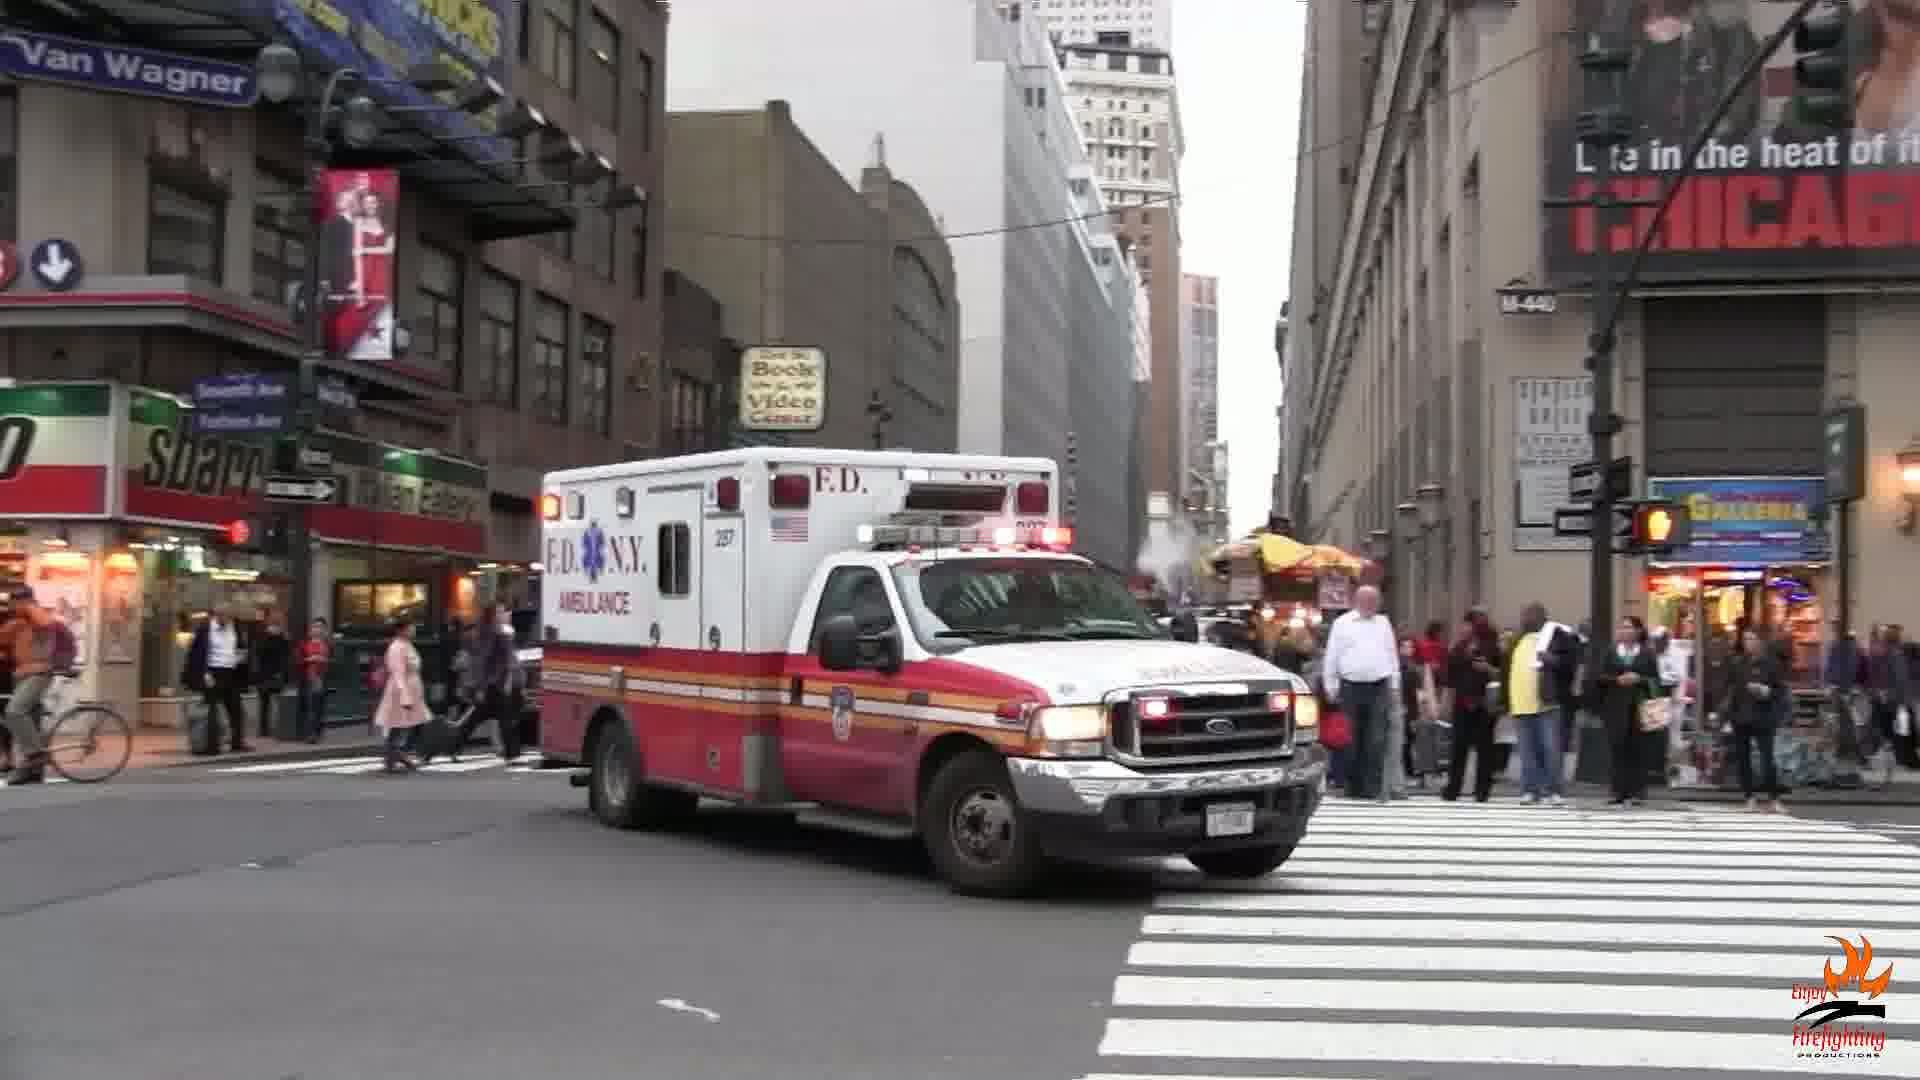 Fdny Ambulance Wallpaper wwwgalleryhipcom   The 1920x1080